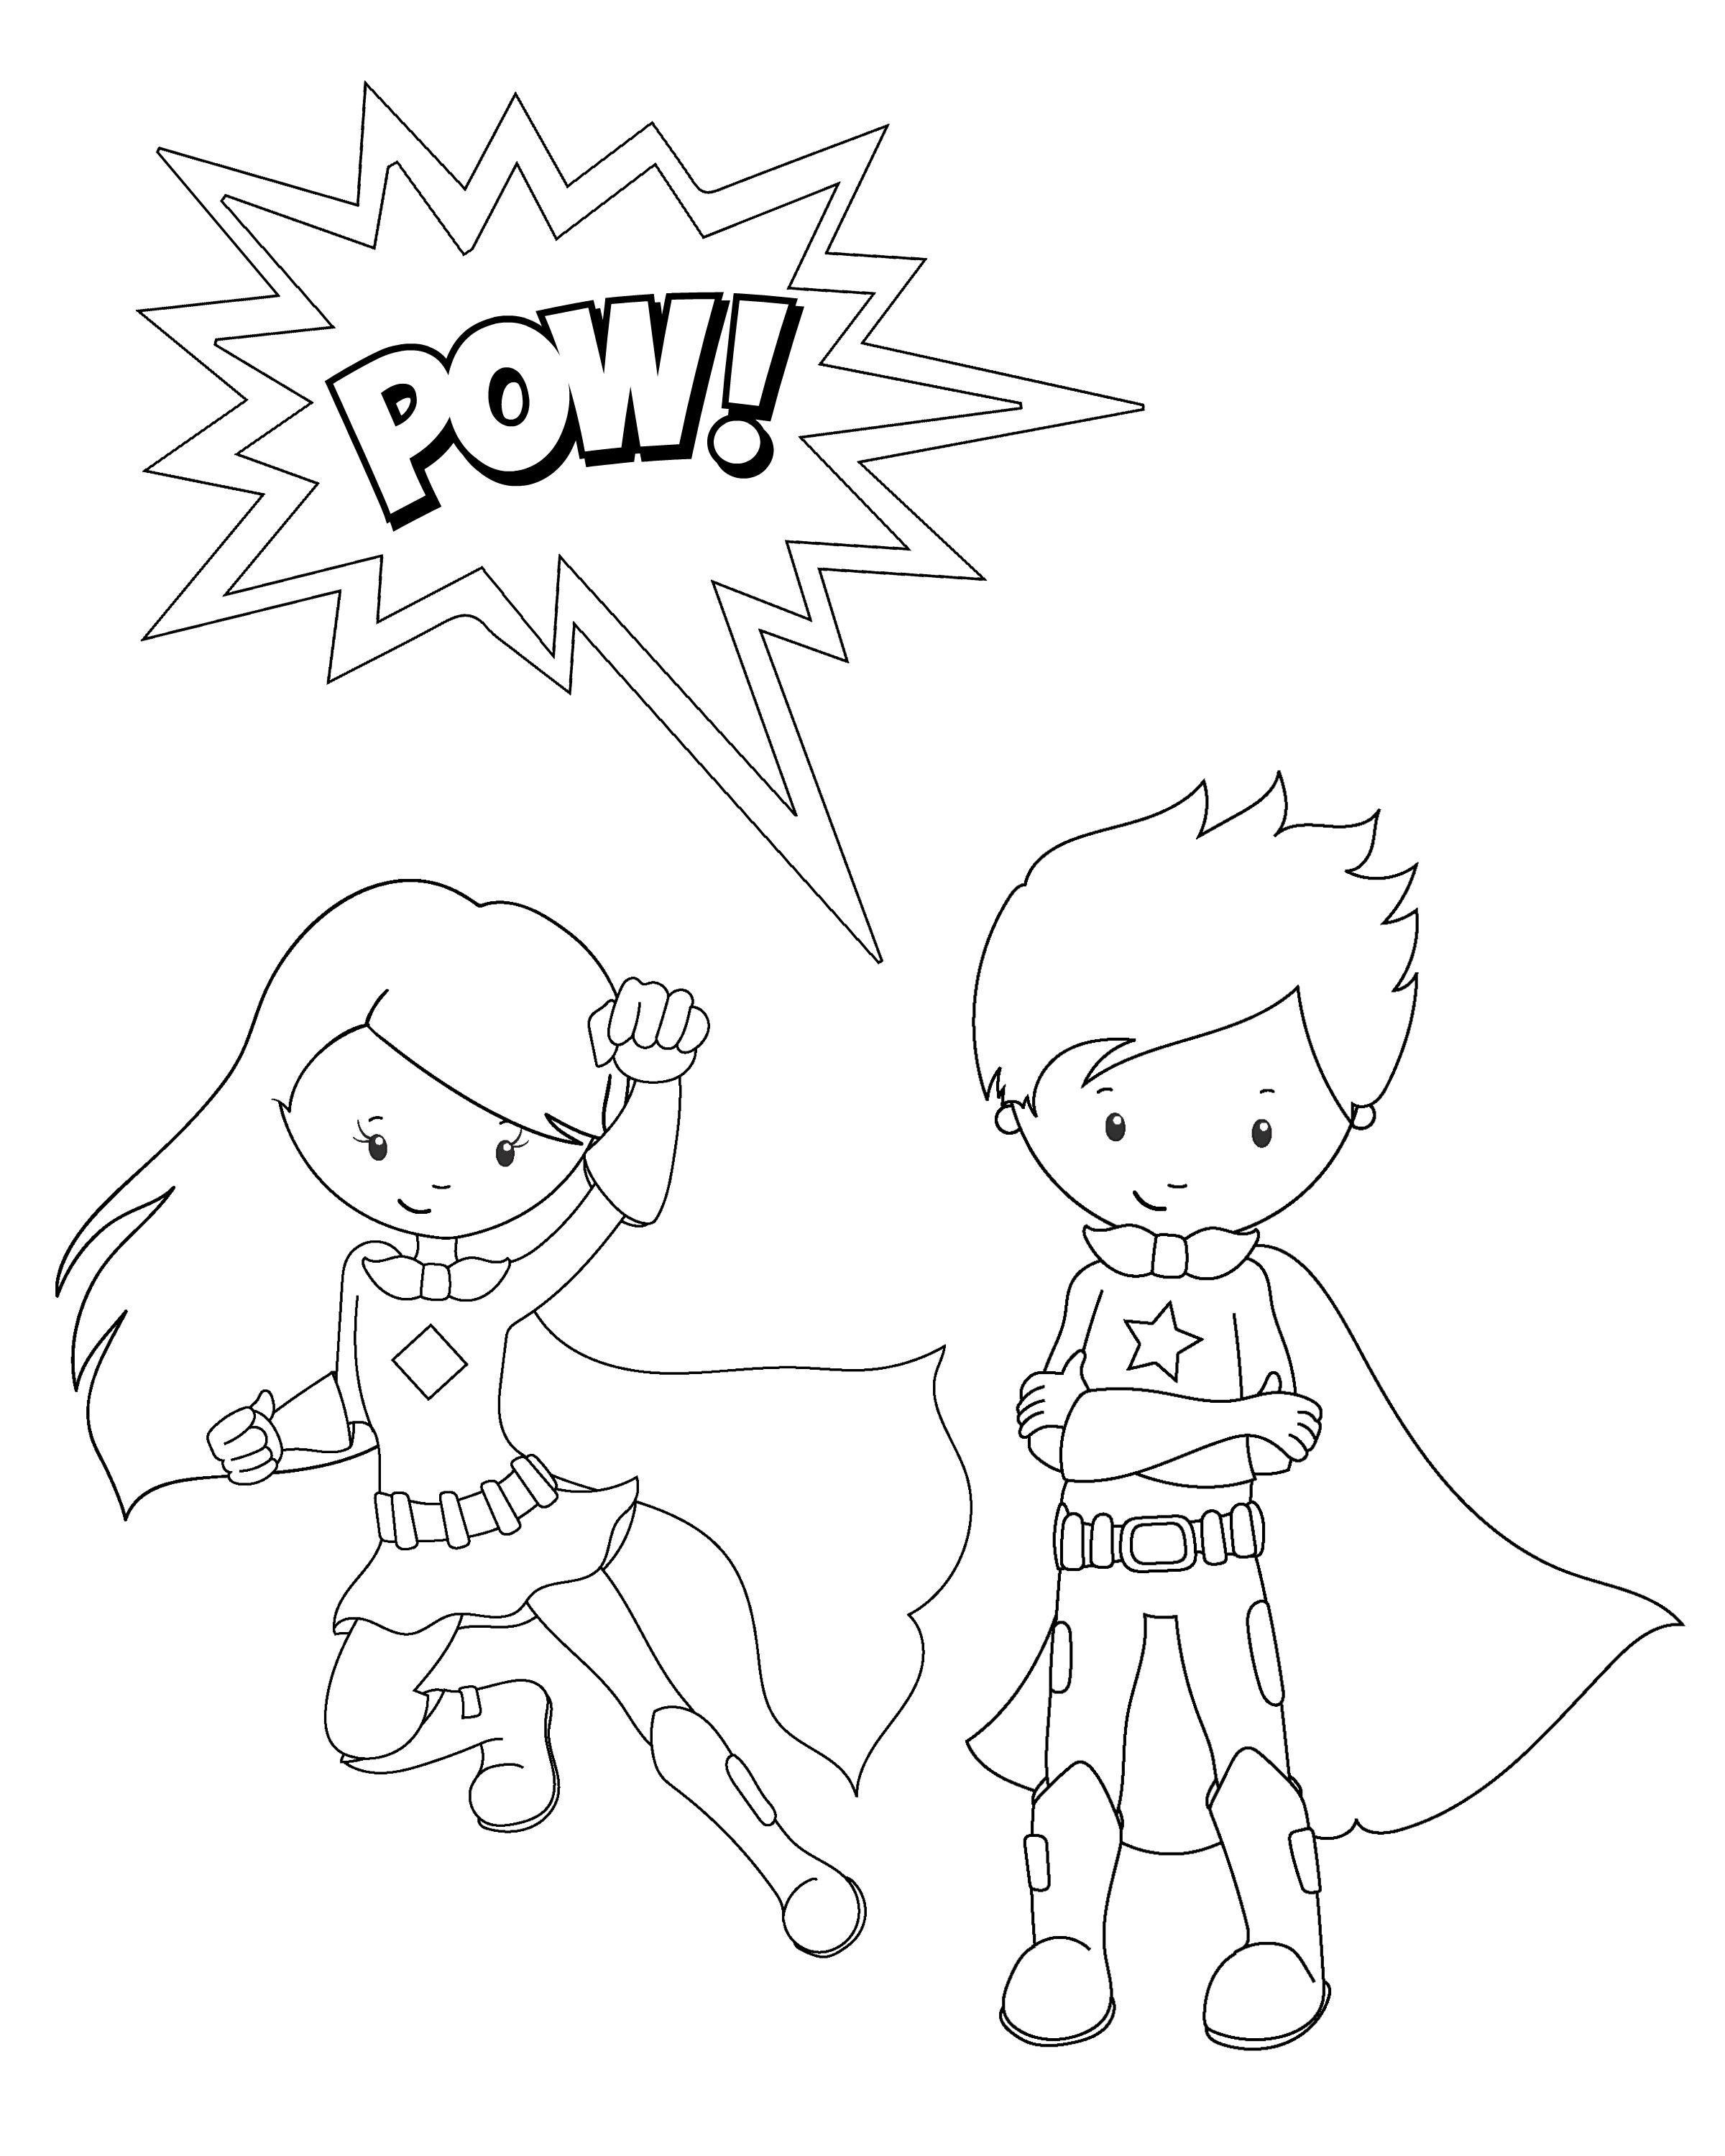 Free Printable Superhero Coloring Sheets For Kids Super Hero